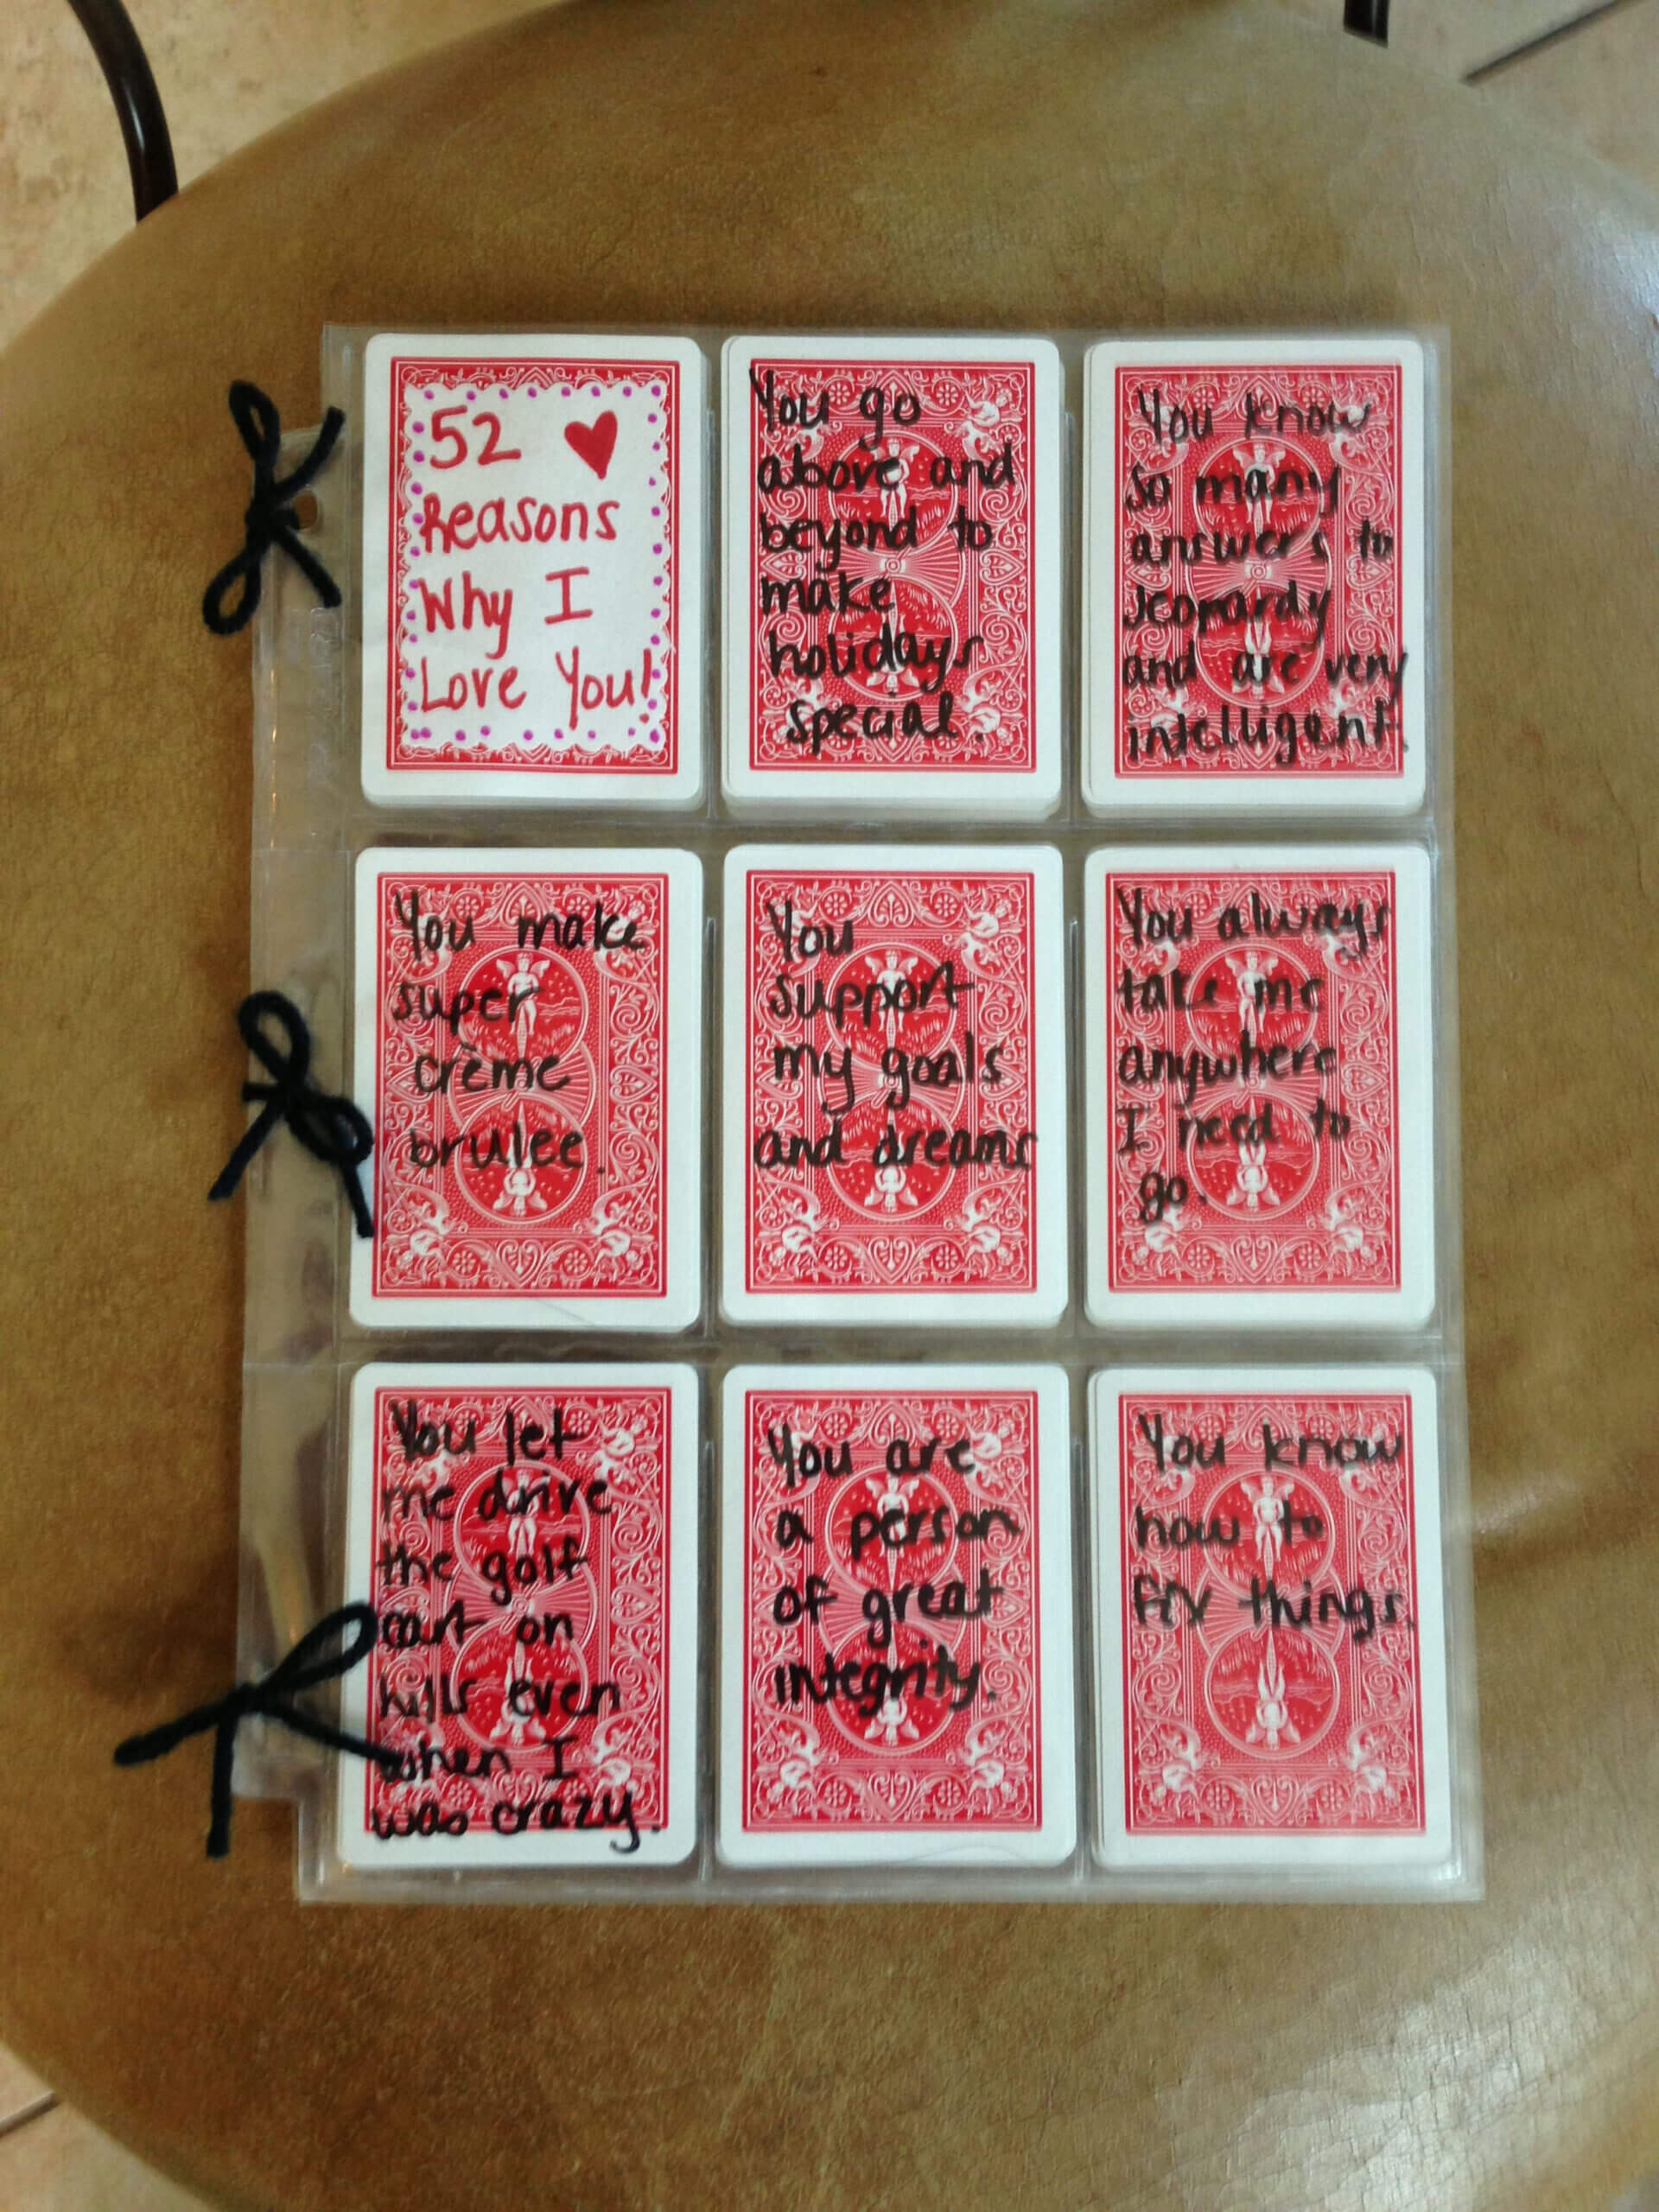 52 Reasons I Love You Write Reasons With Sharpie On Cards Regarding 52 Reasons Why I Love You Cards Templates Free